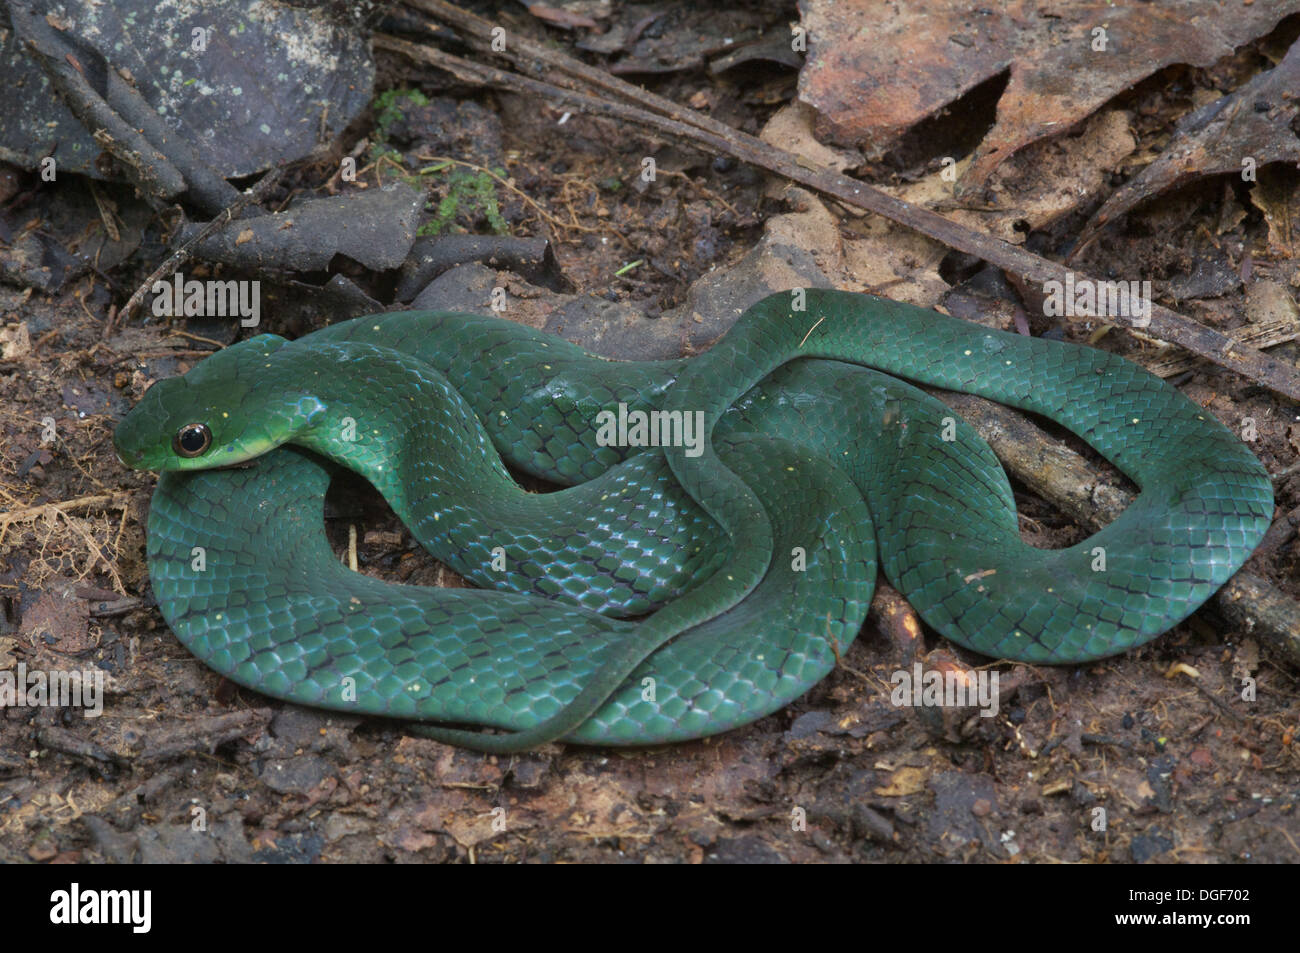 A Velvety Swamp Snake [Liophis typhlus typhlus] on the forest floor in the Amazonian rainforest in Loreto, Peru. - Stock Image